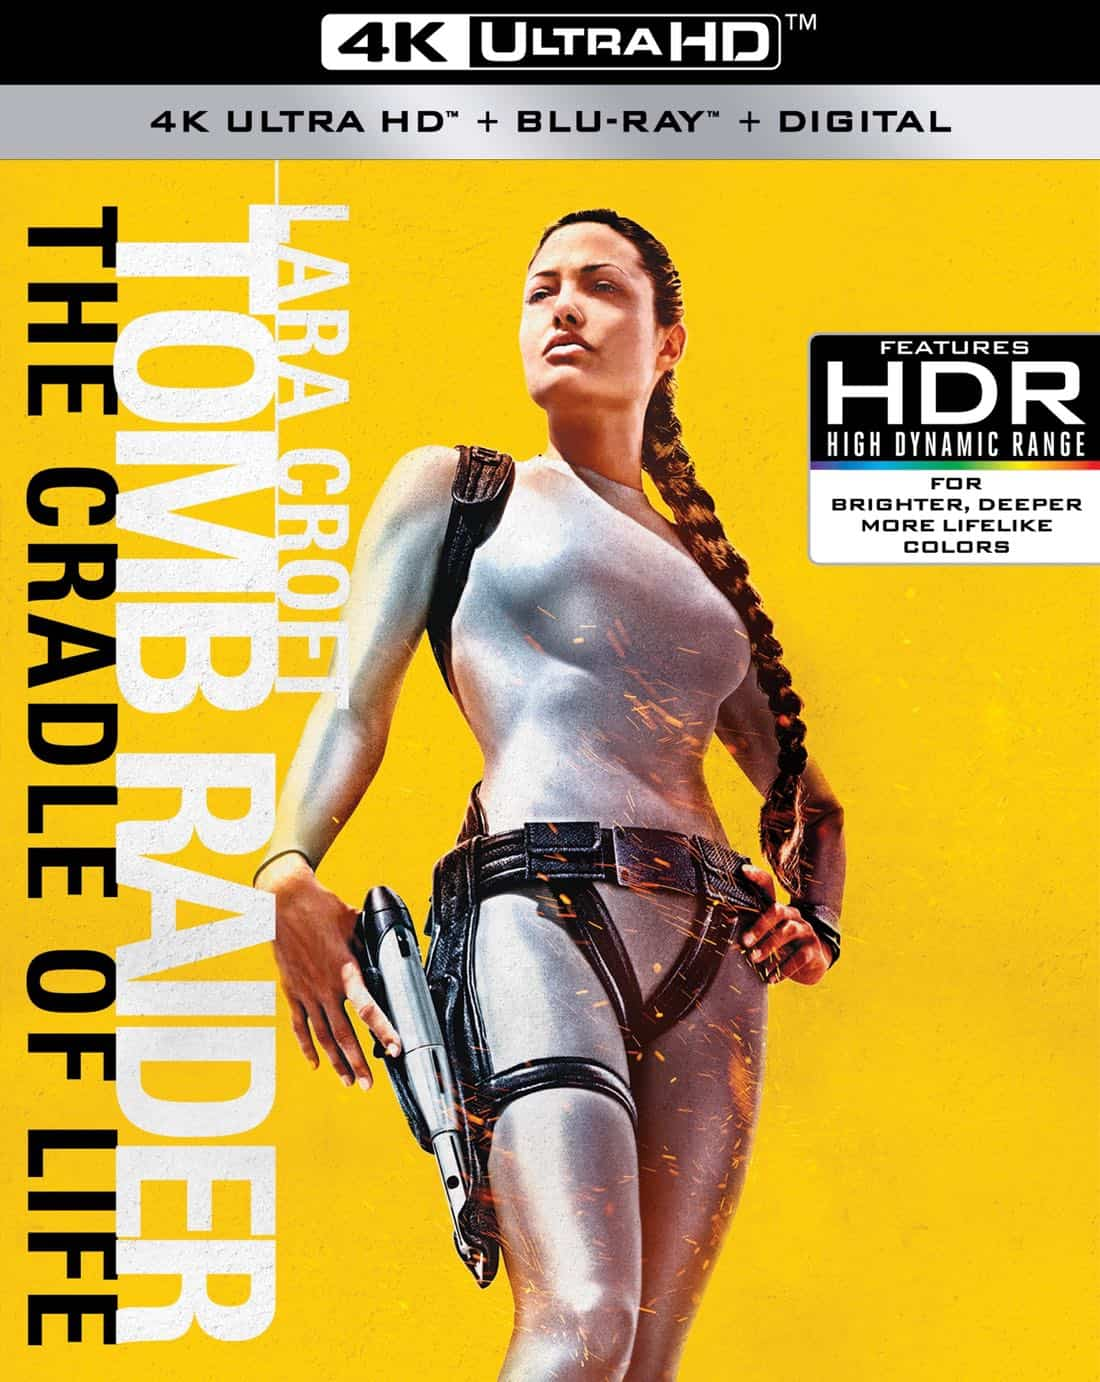 Lara-Croft-Tomb-Raider-The-Cradle-Of-Life-4K-Ultra-HD-Bluray-Cover-1